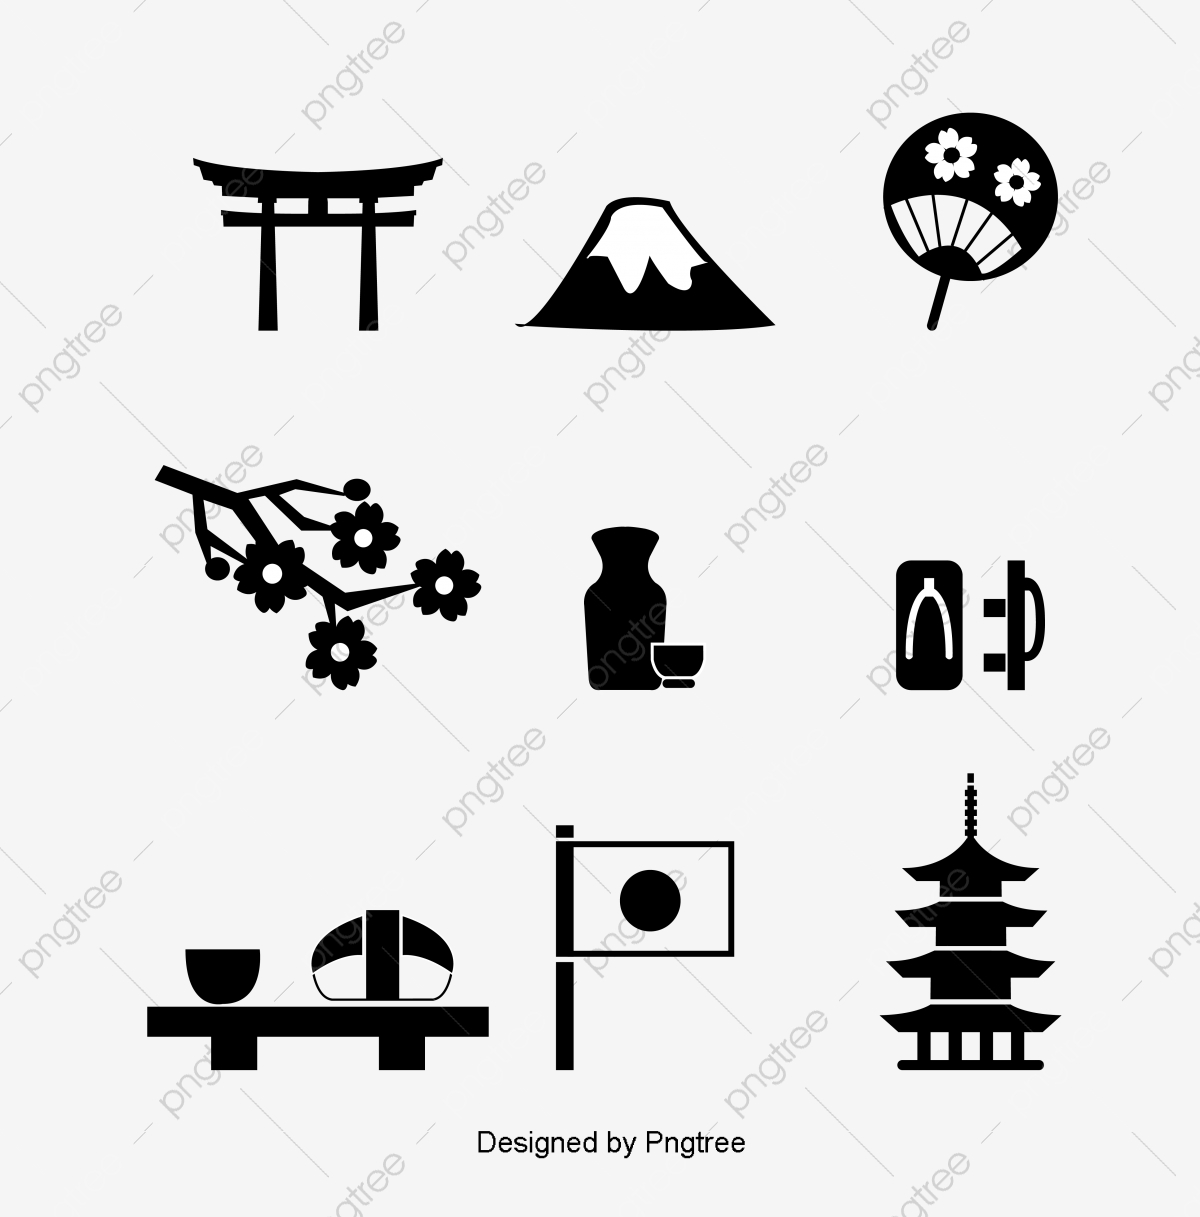 Japanese clipart black and white. Simple decorative design pagoda